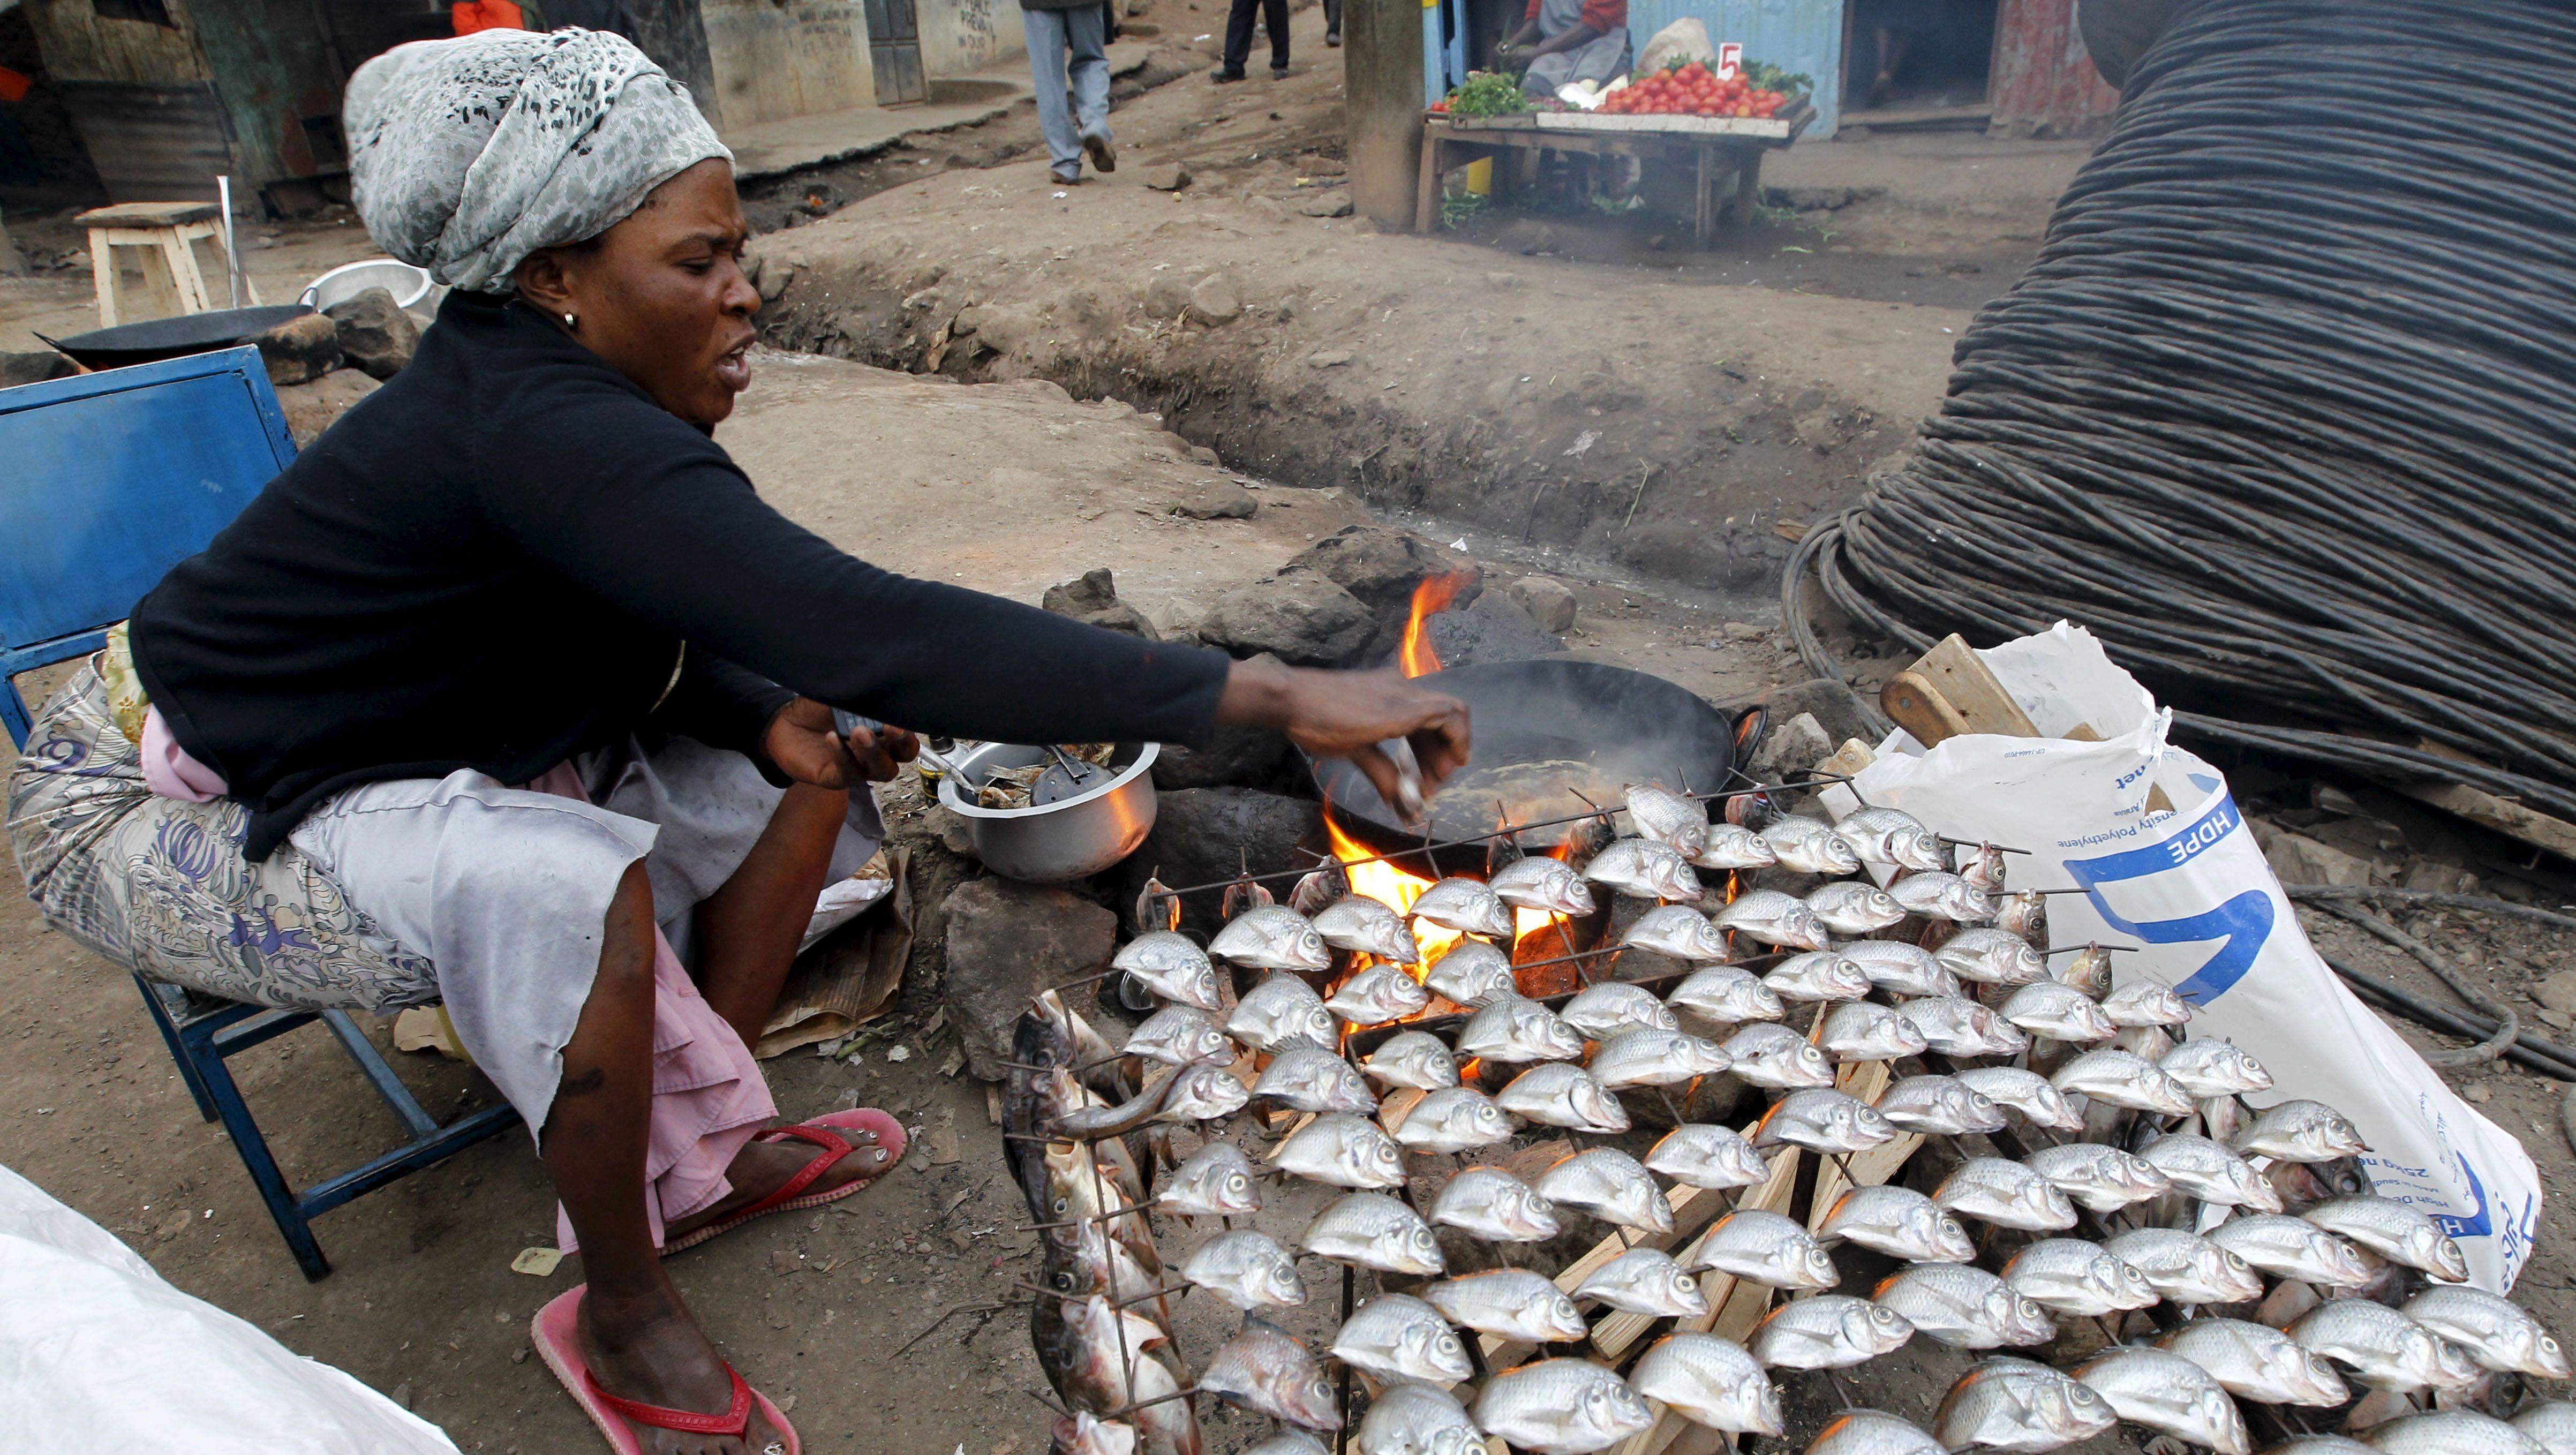 A woman fries fish for sale at her open stall within Mathare valley slums in Kenya's capital Nairobi, July 9, 2015.